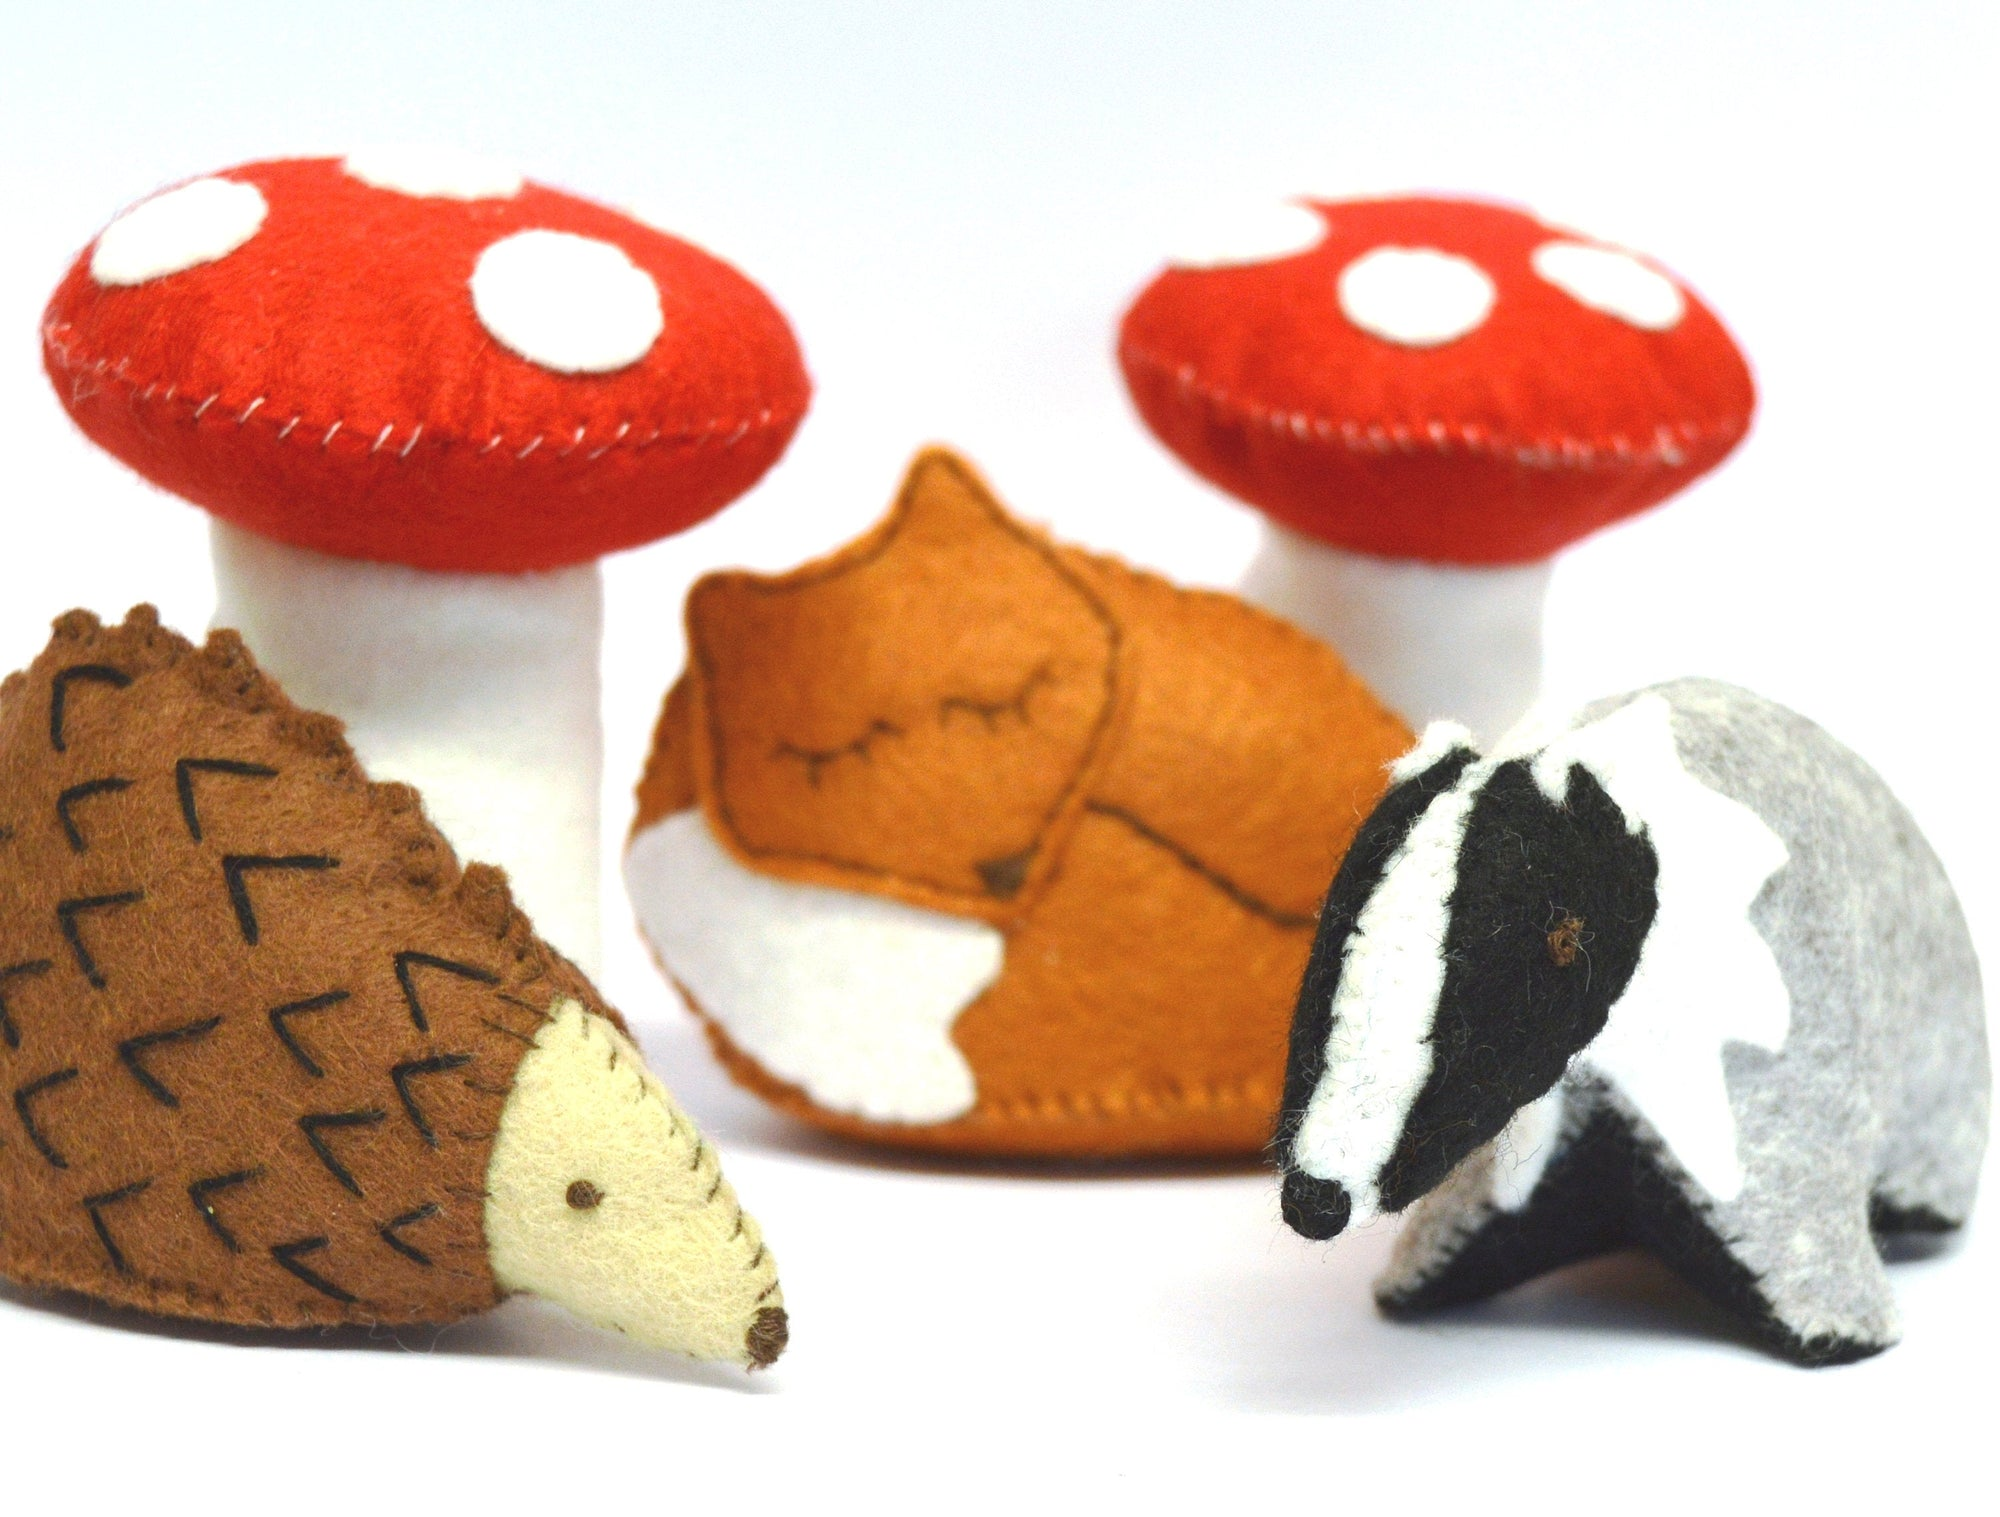 Corinne Lapierre Sewing Kit - Woodland Scene - Fox, Hedgehog, Badger and Mushrooms